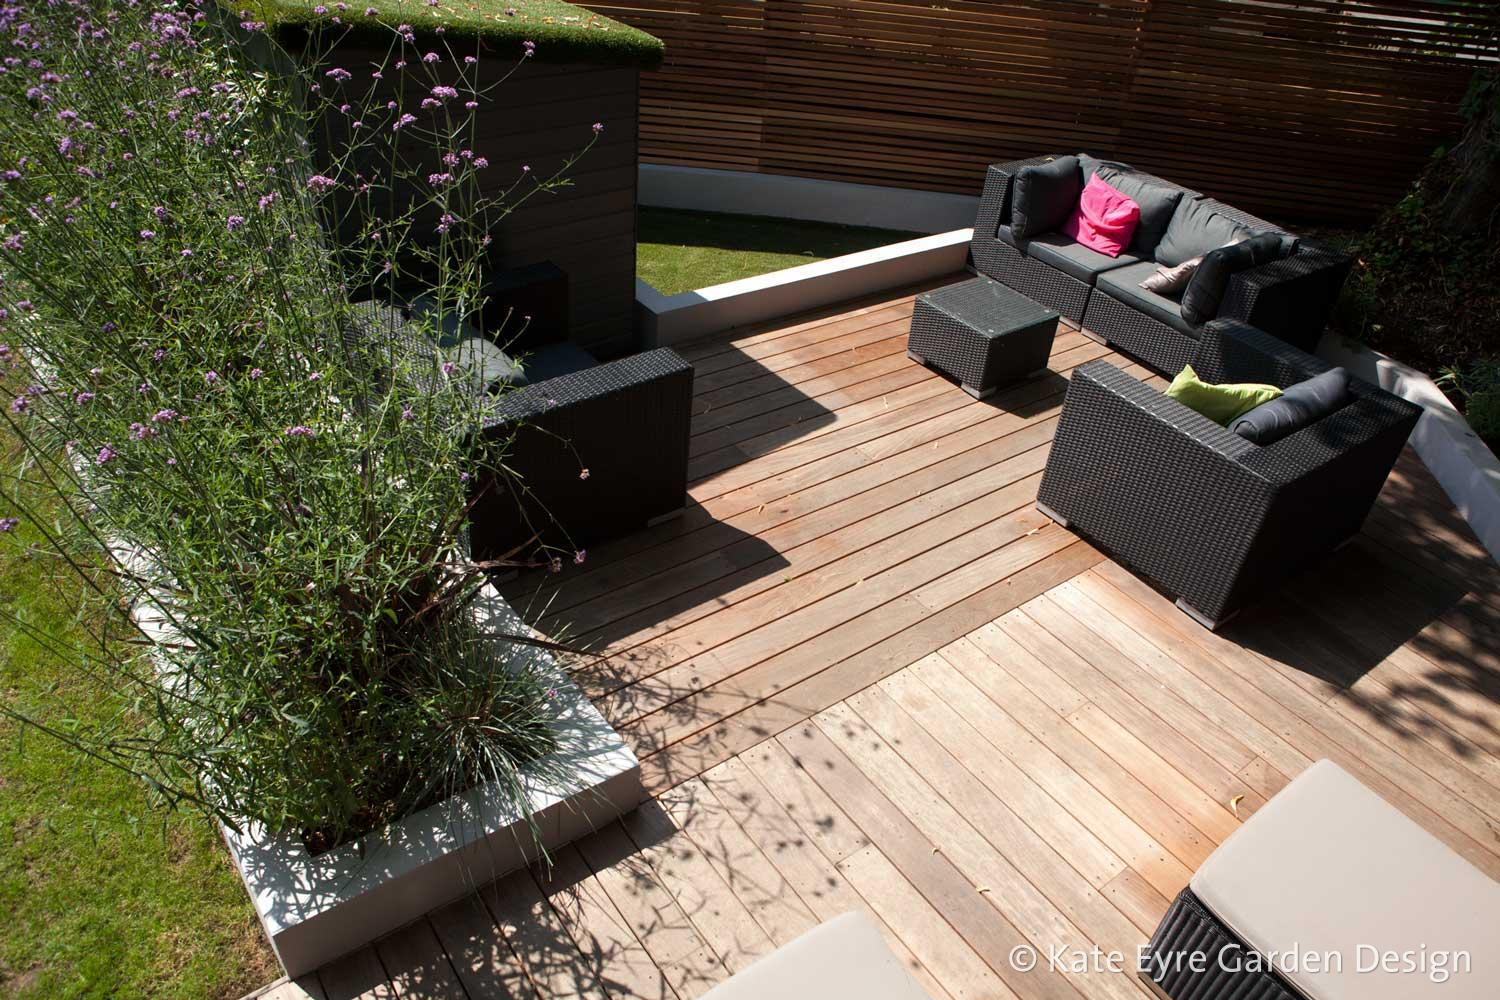 Medium back garden design in Drewstead Road, Streatham, 2